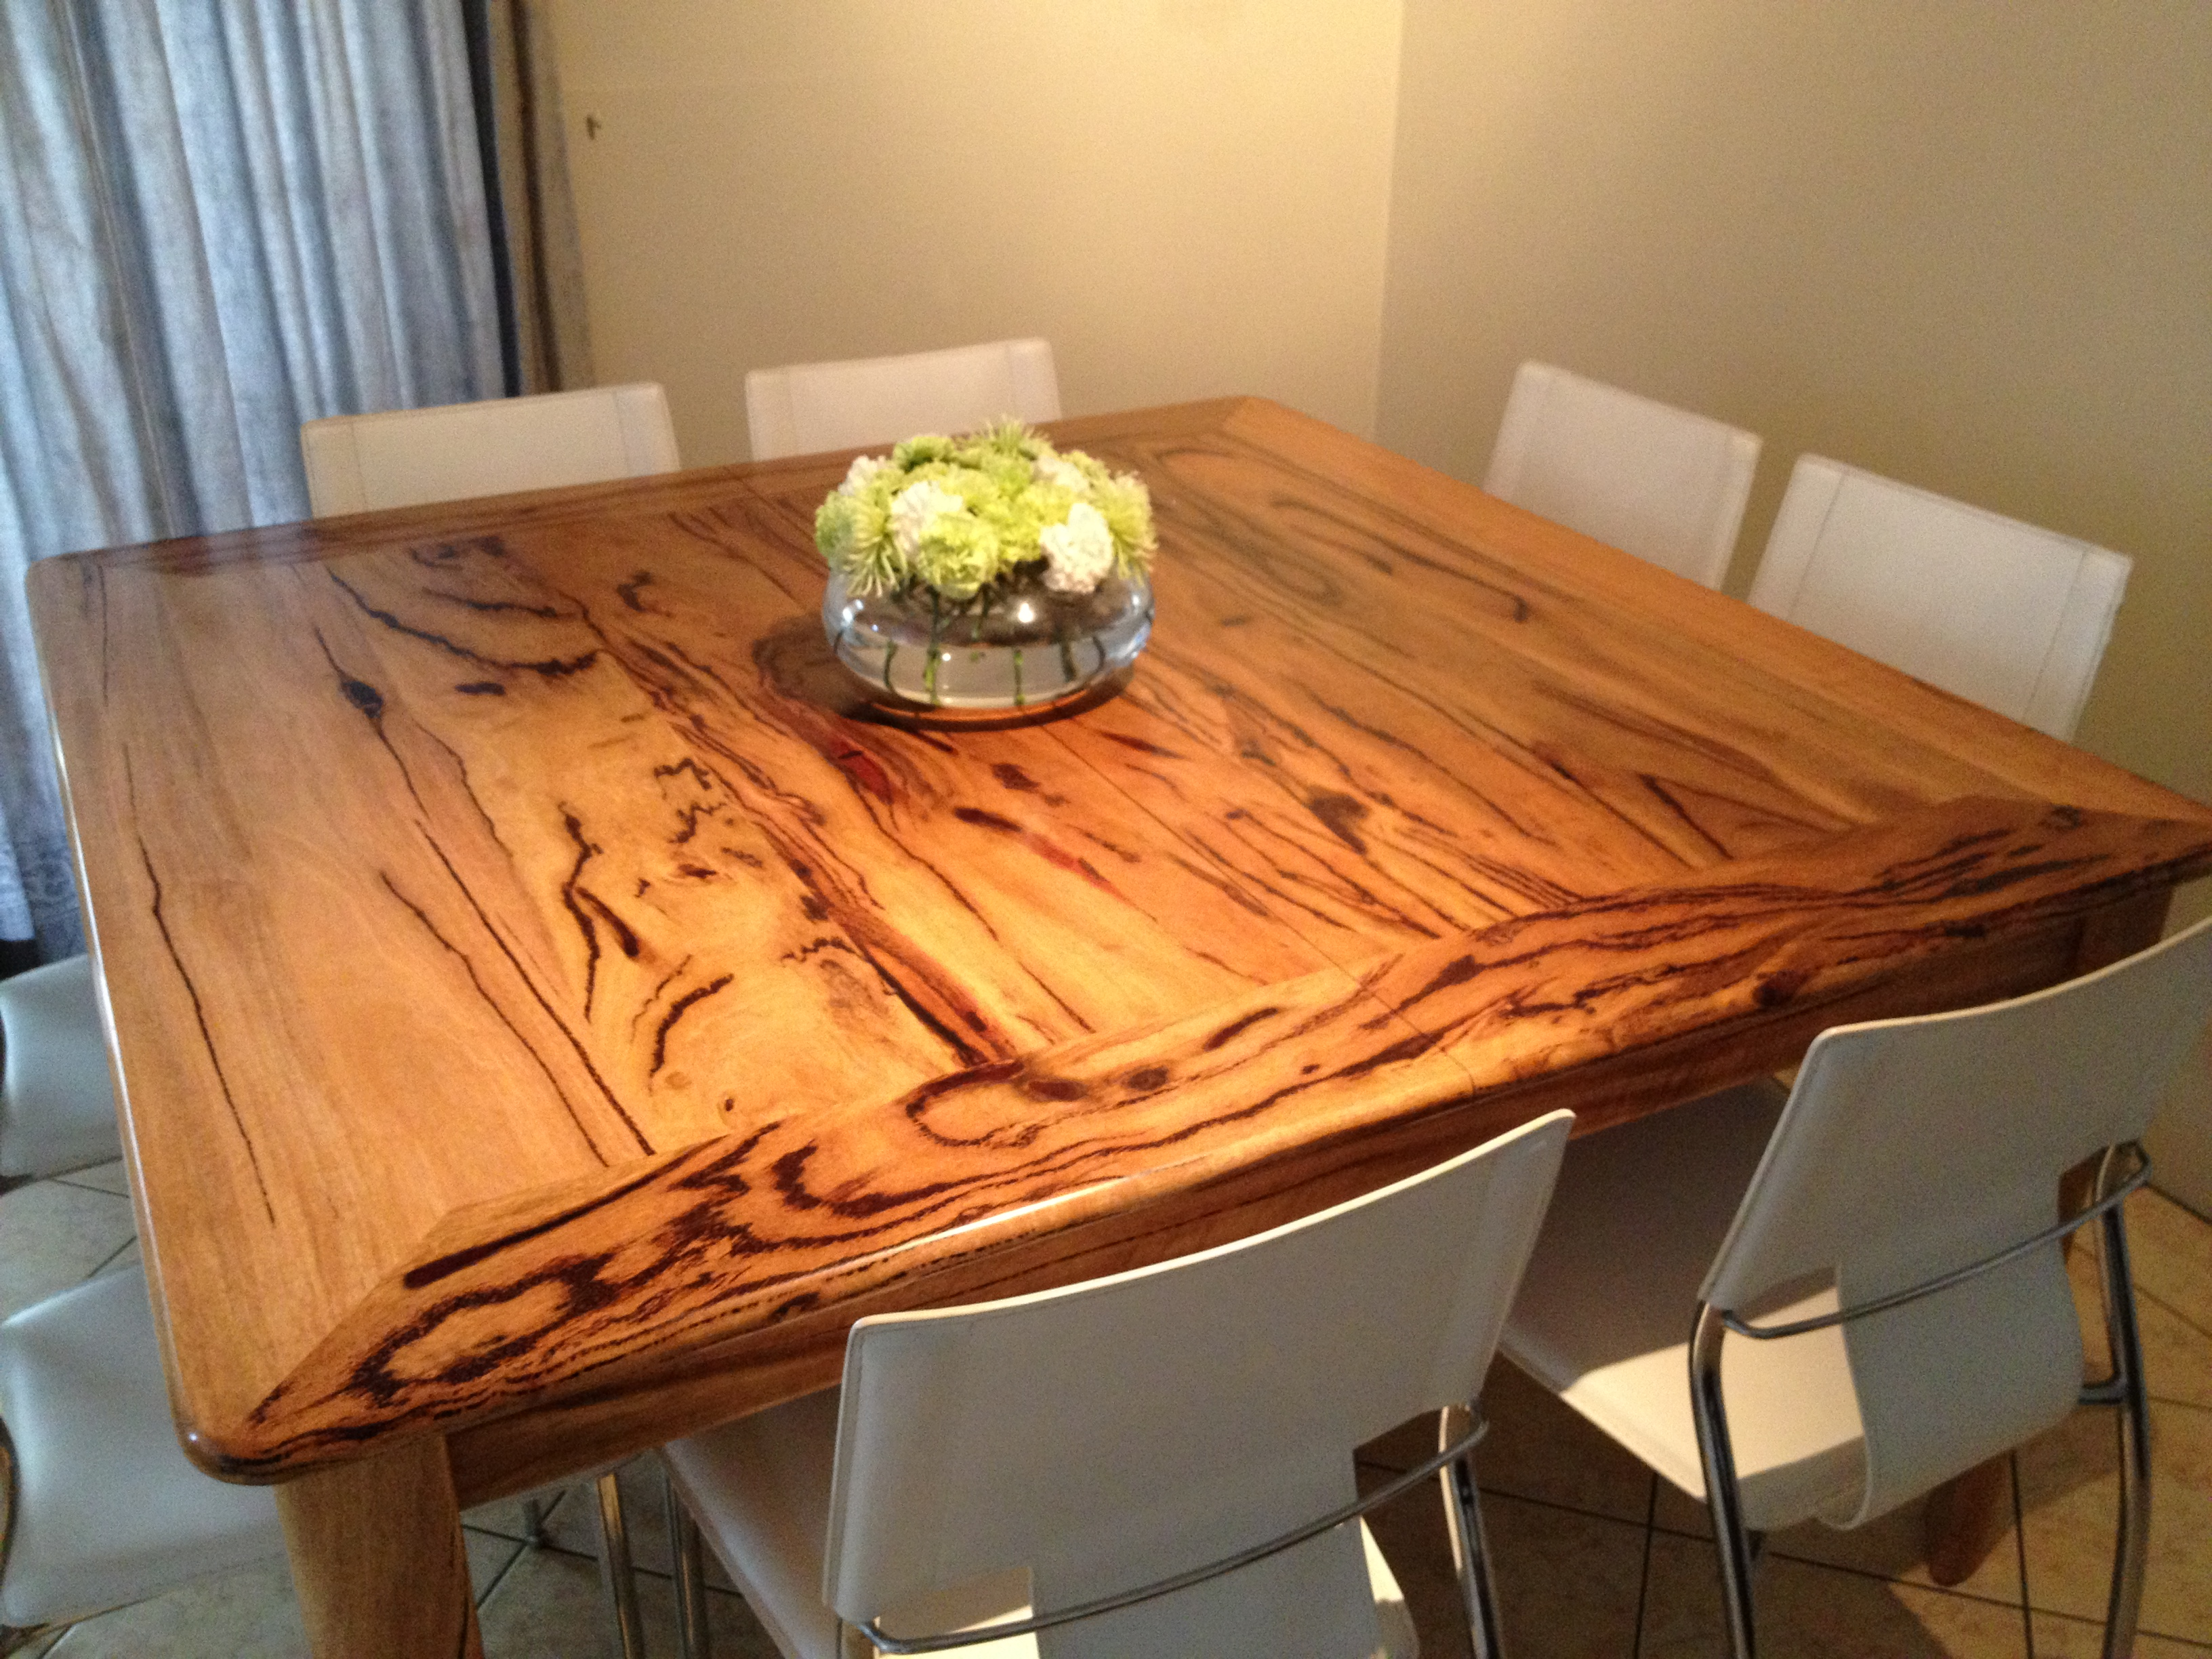 Feature Grain Marri Timber Table Top